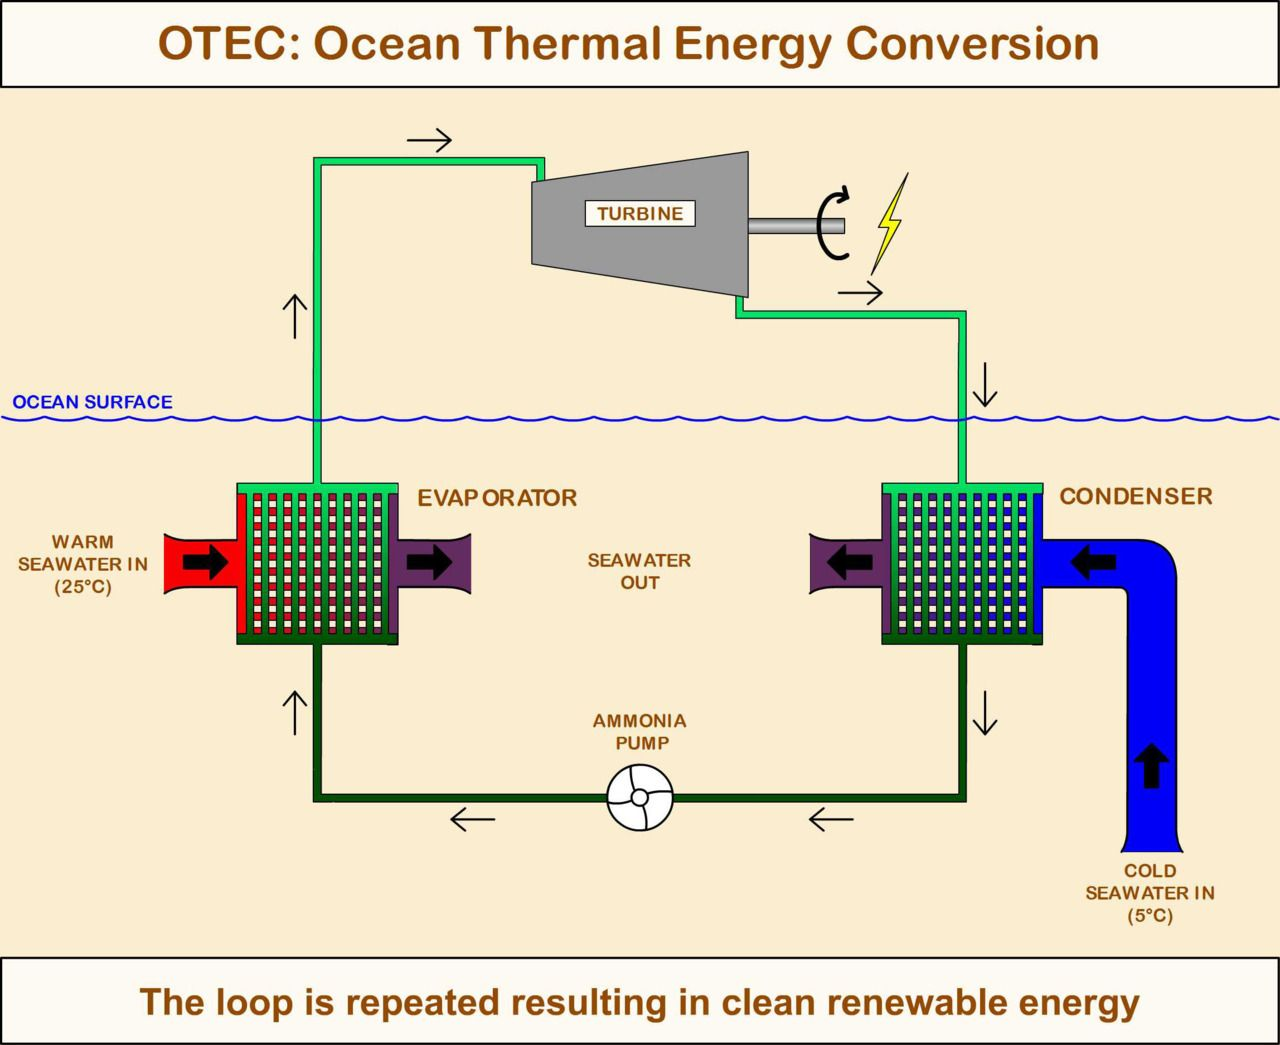 small resolution of thermal energy diagram wiring diagram forward geothermal energy diagram otec production diagram ocean thermal energy conversion